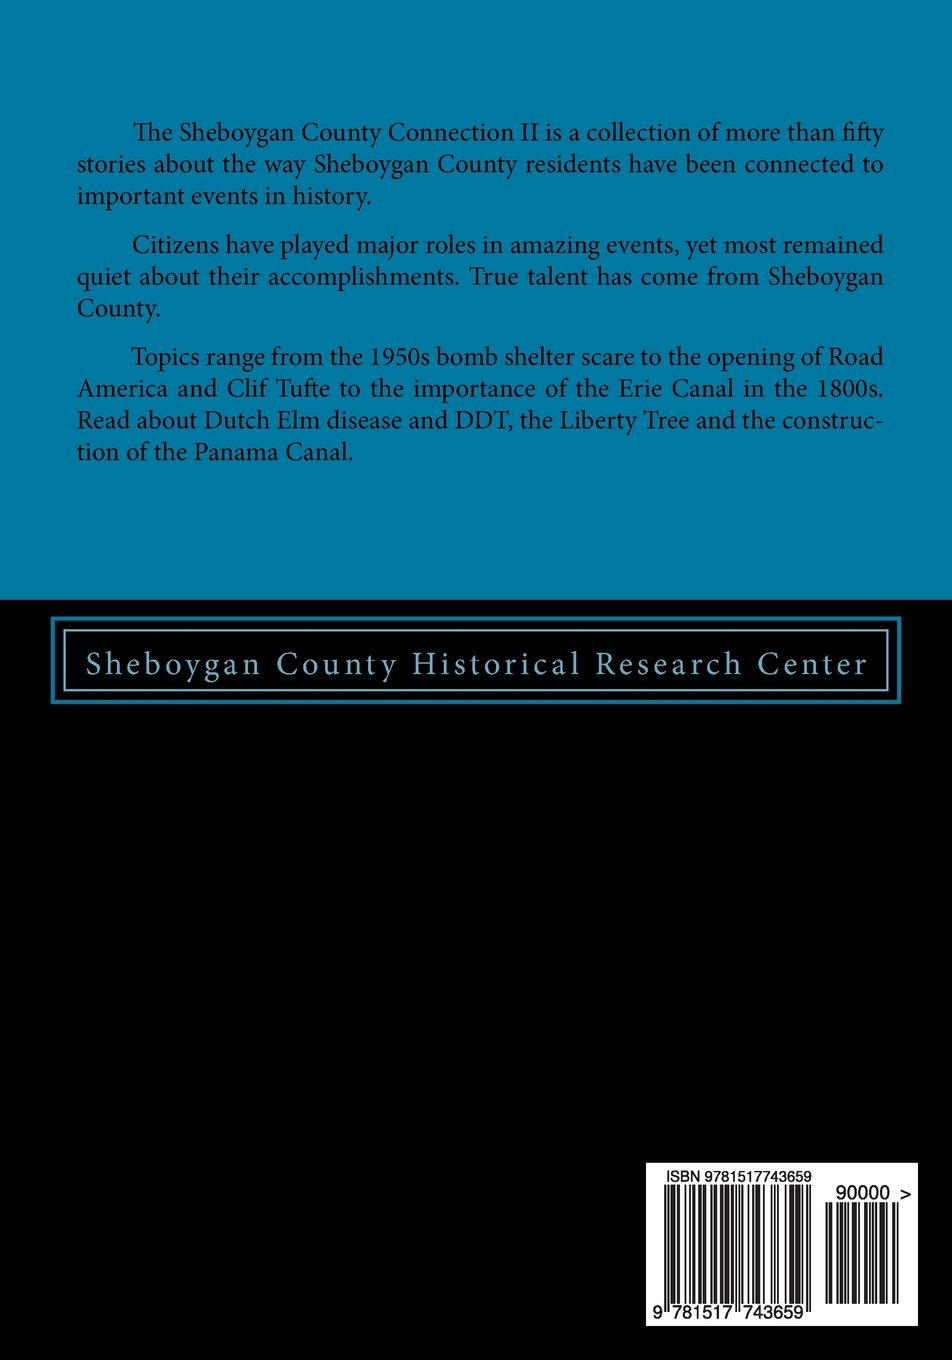 Sheboygan County Connection: From Road America to the Erie